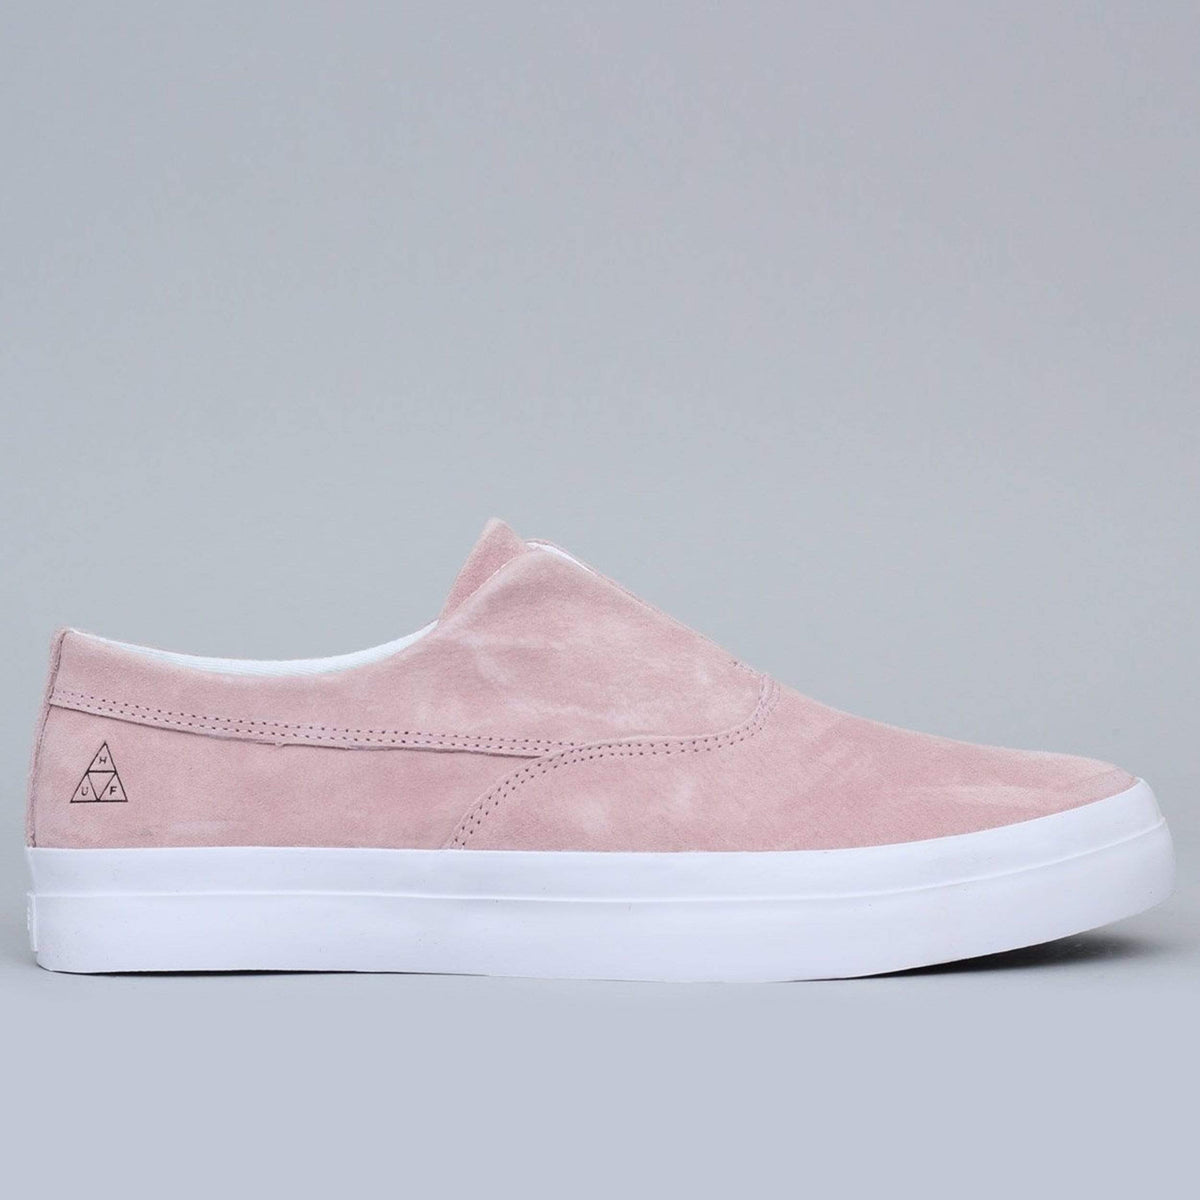 HUF Dylan Slip On Shoes Pink from Slam